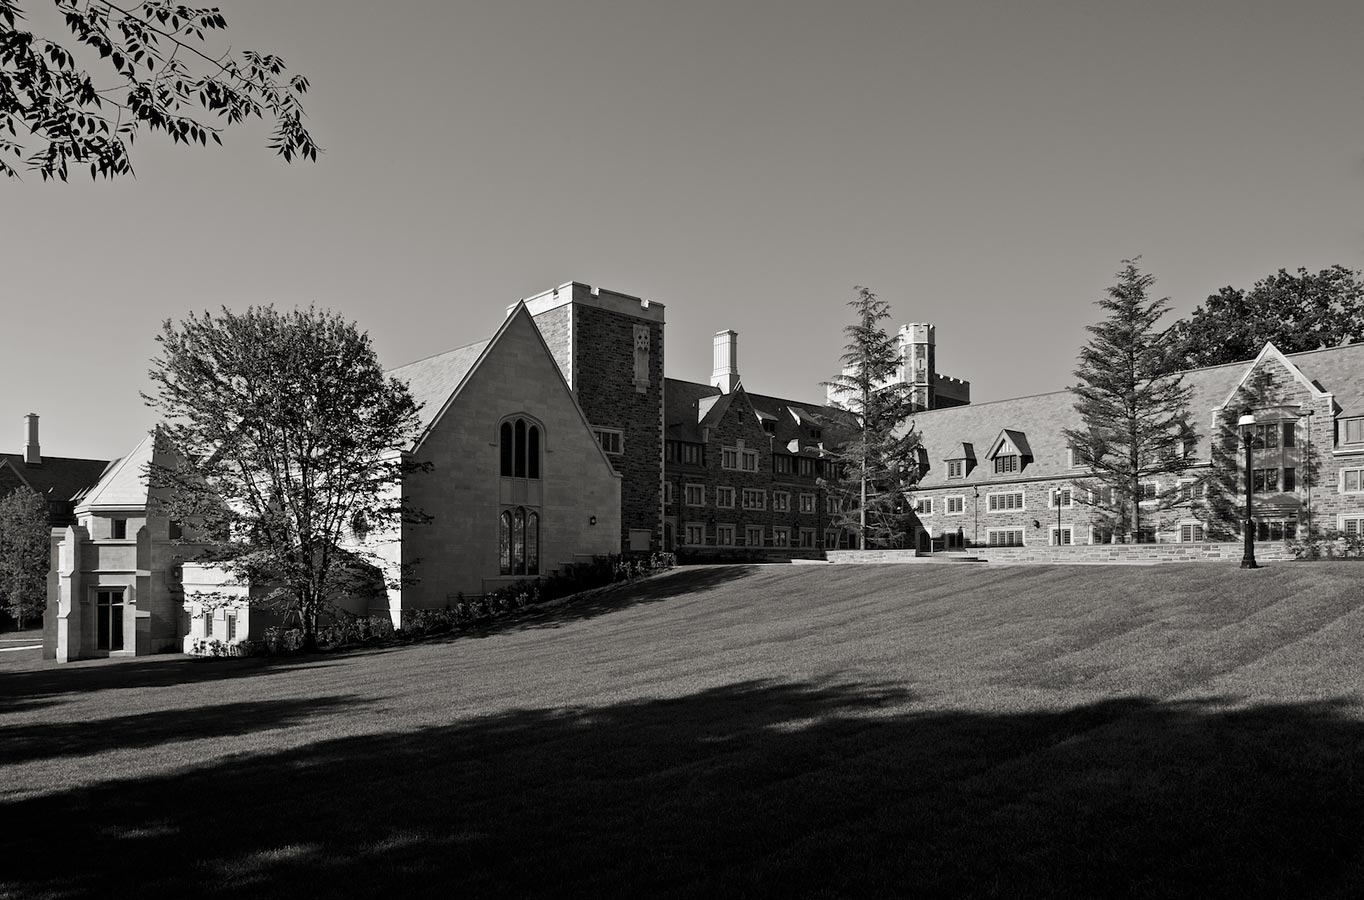 Whitman College, Princeton University